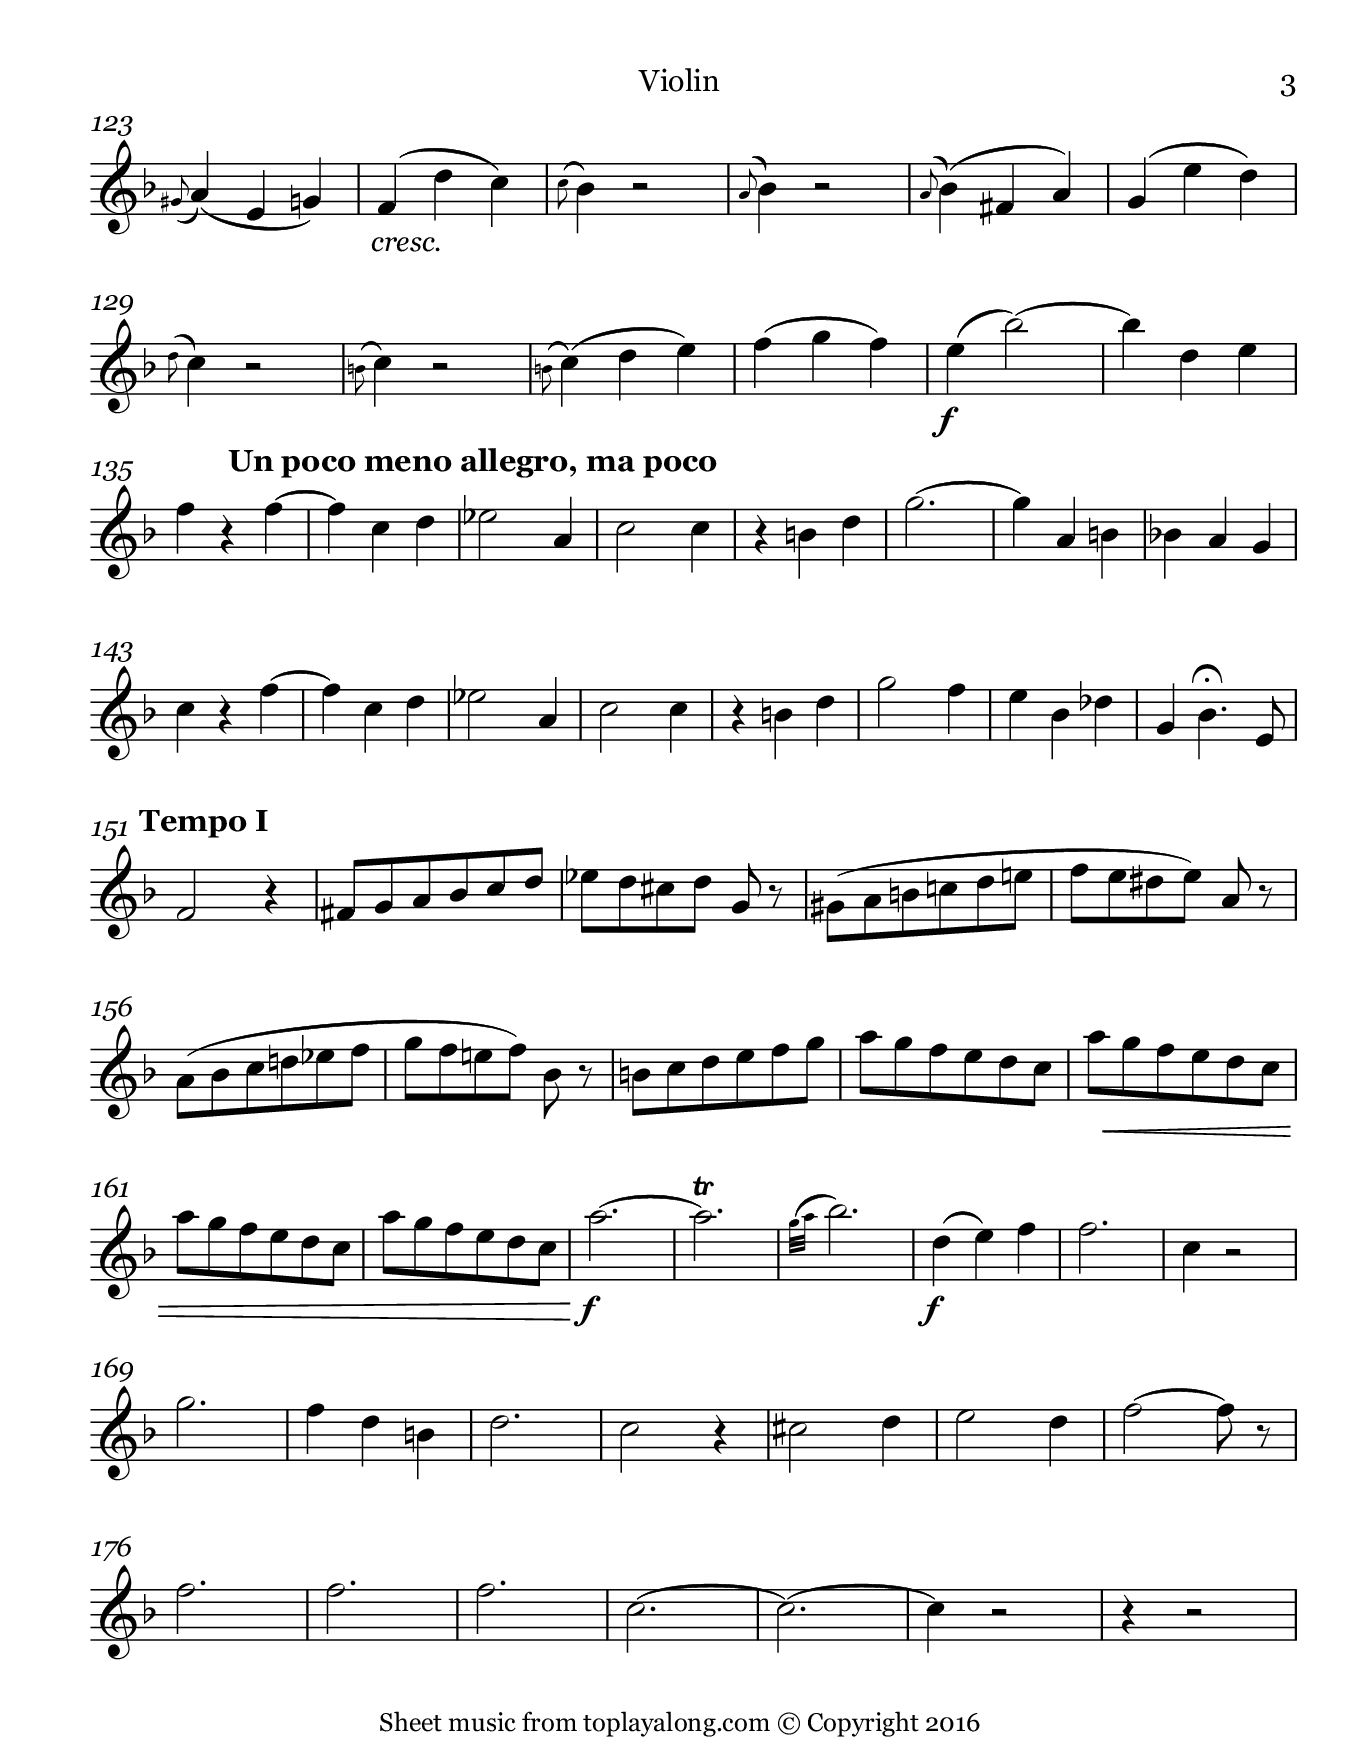 Romeo and Juliet Theme Song sheet music for Violin